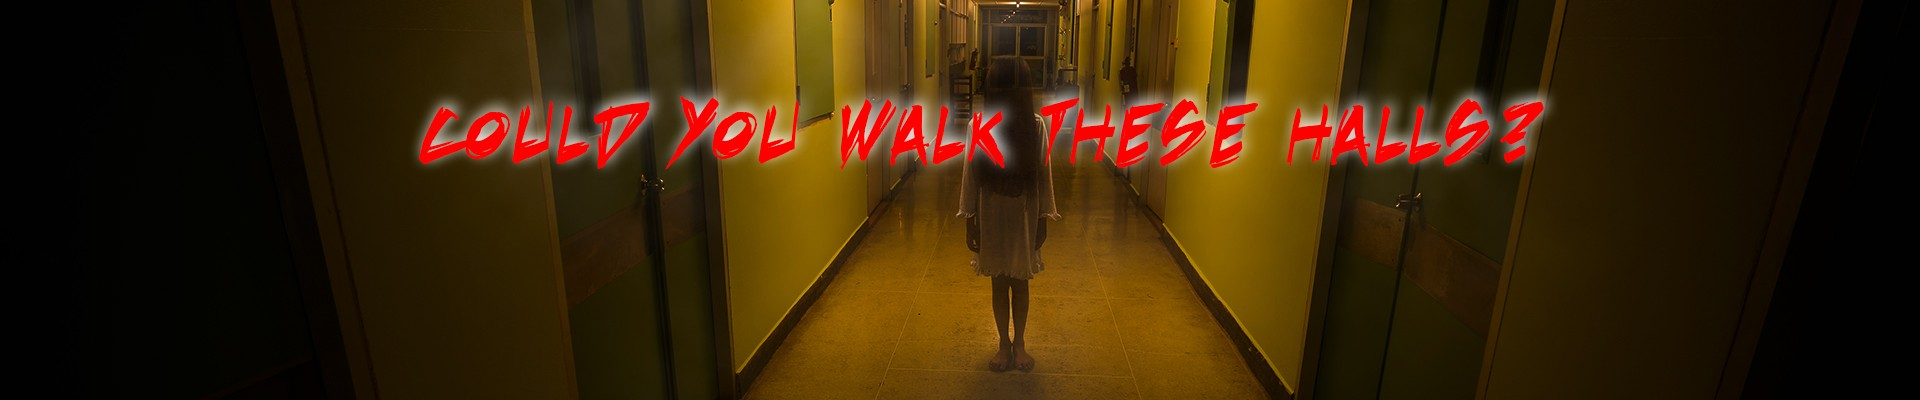 could-you-walk-these-halls-ghostly-figure-in-old-hospital